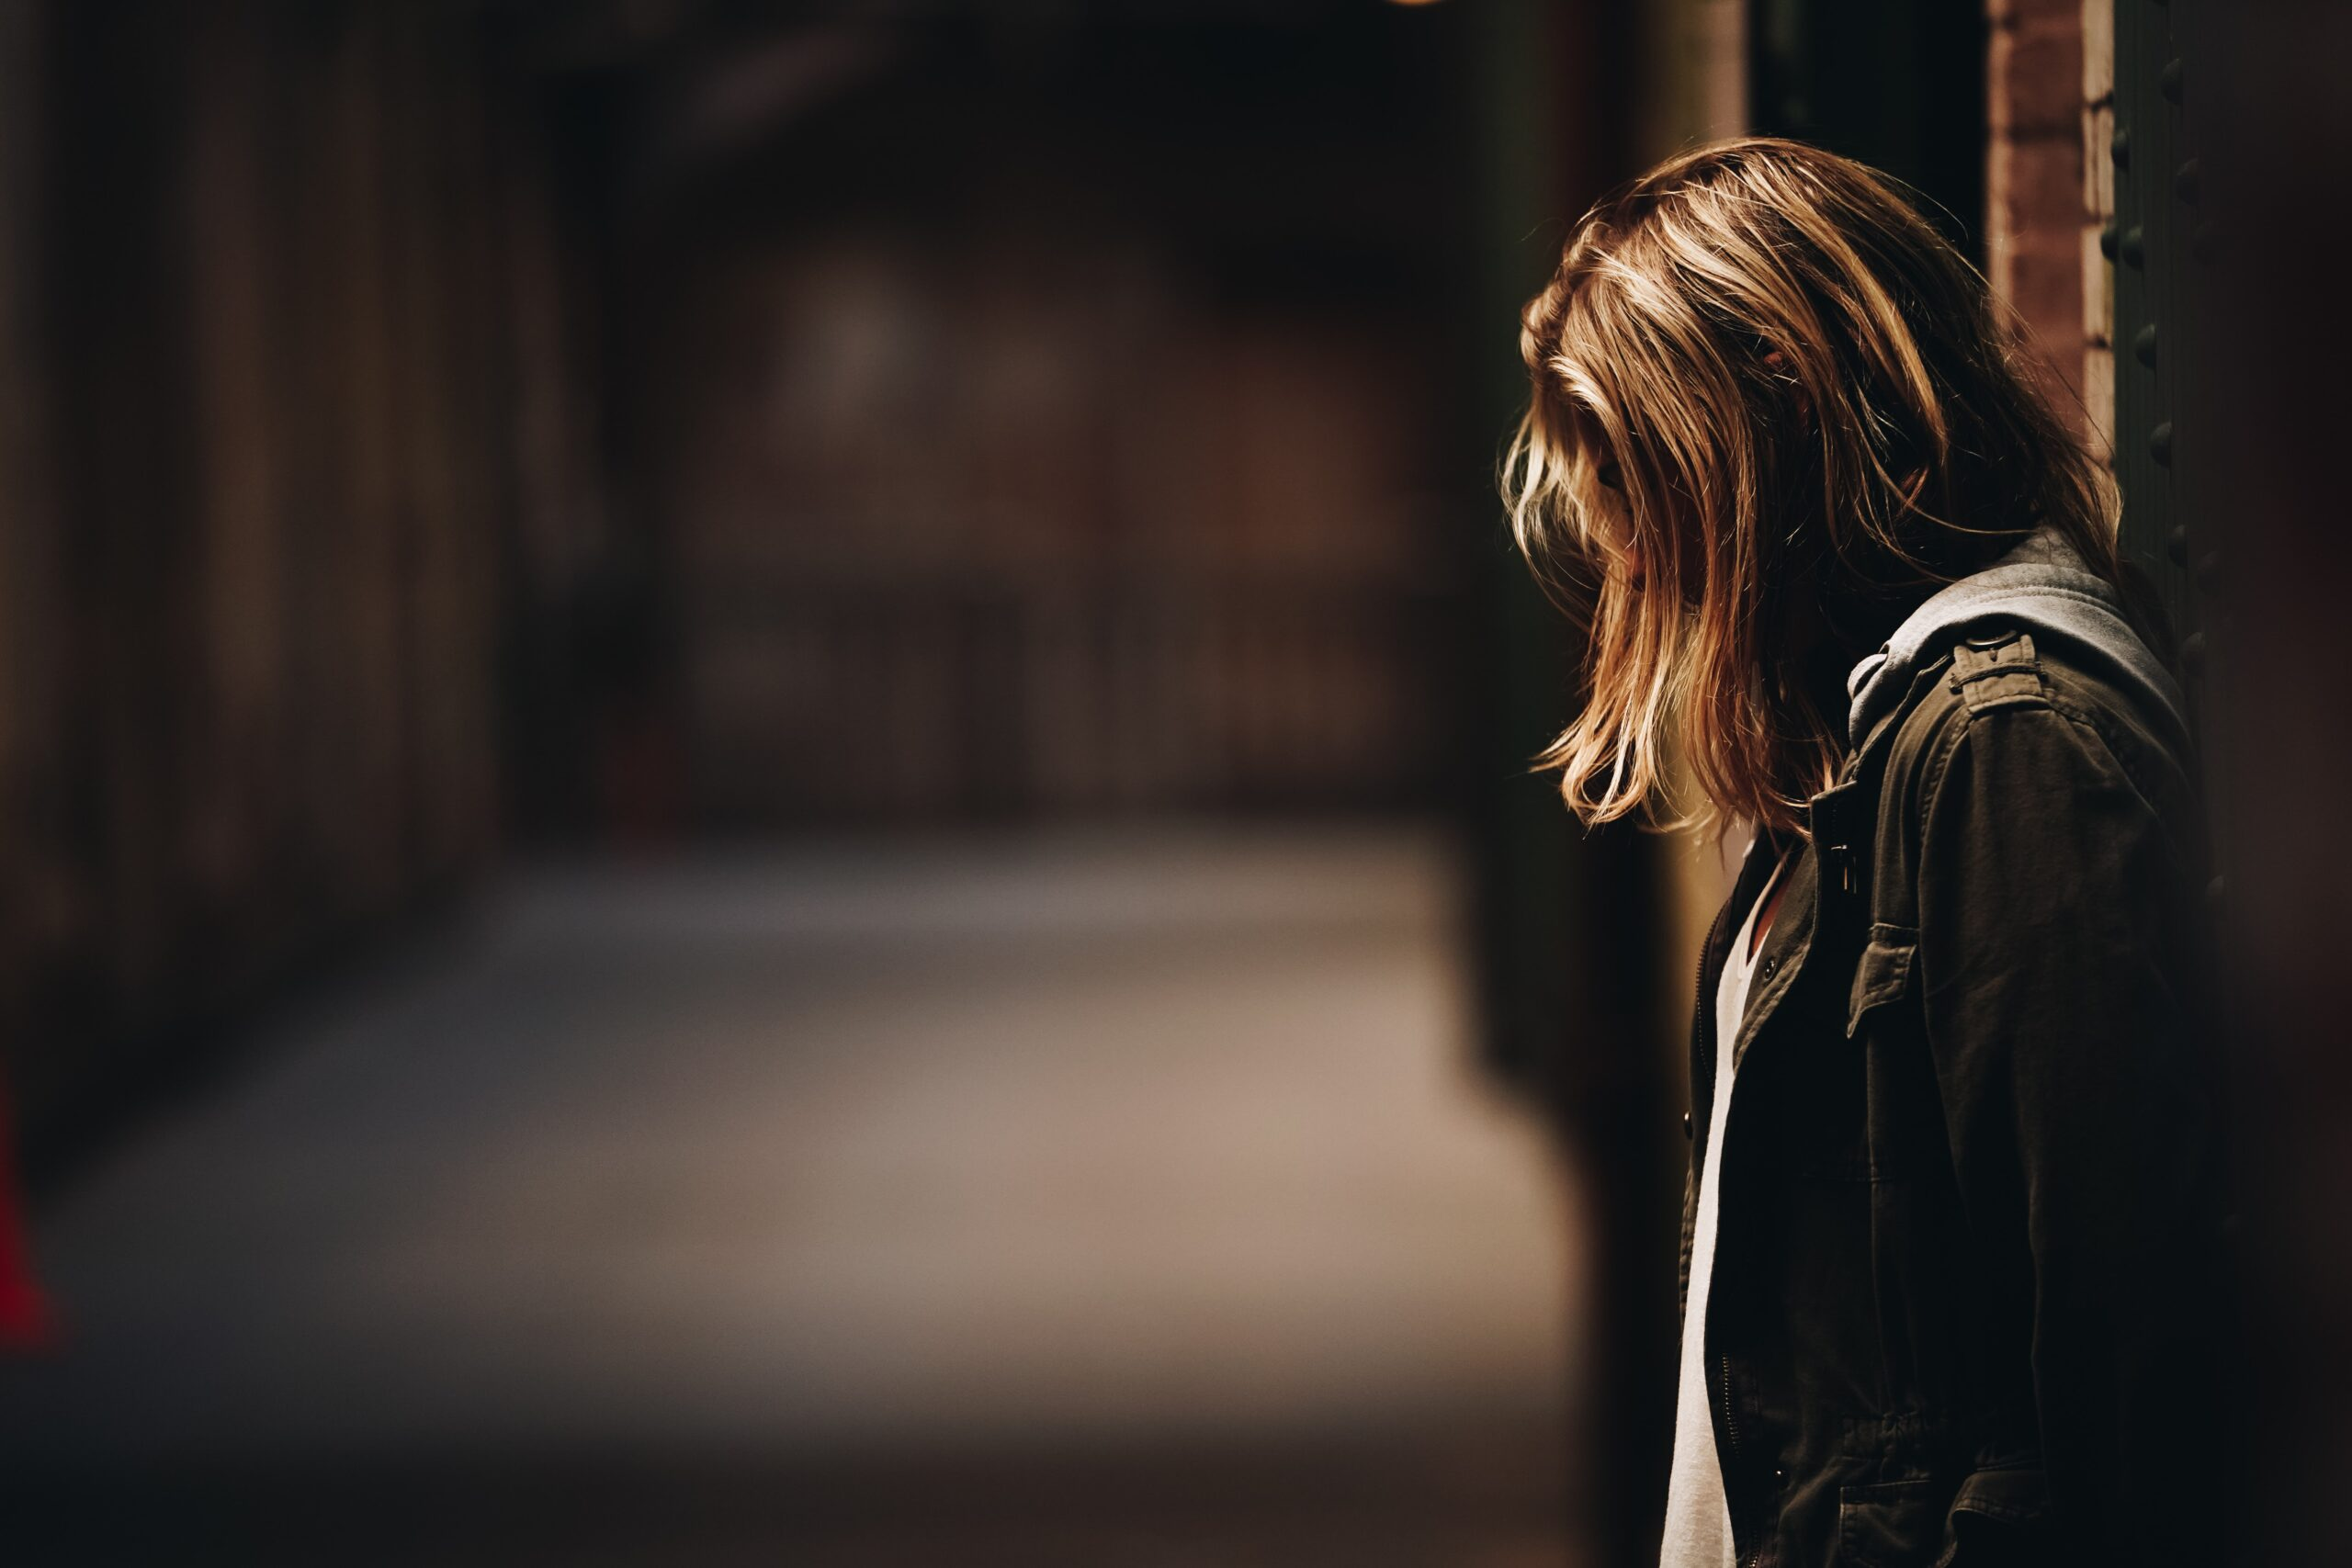 5 Signs of Addiction to Look Out For